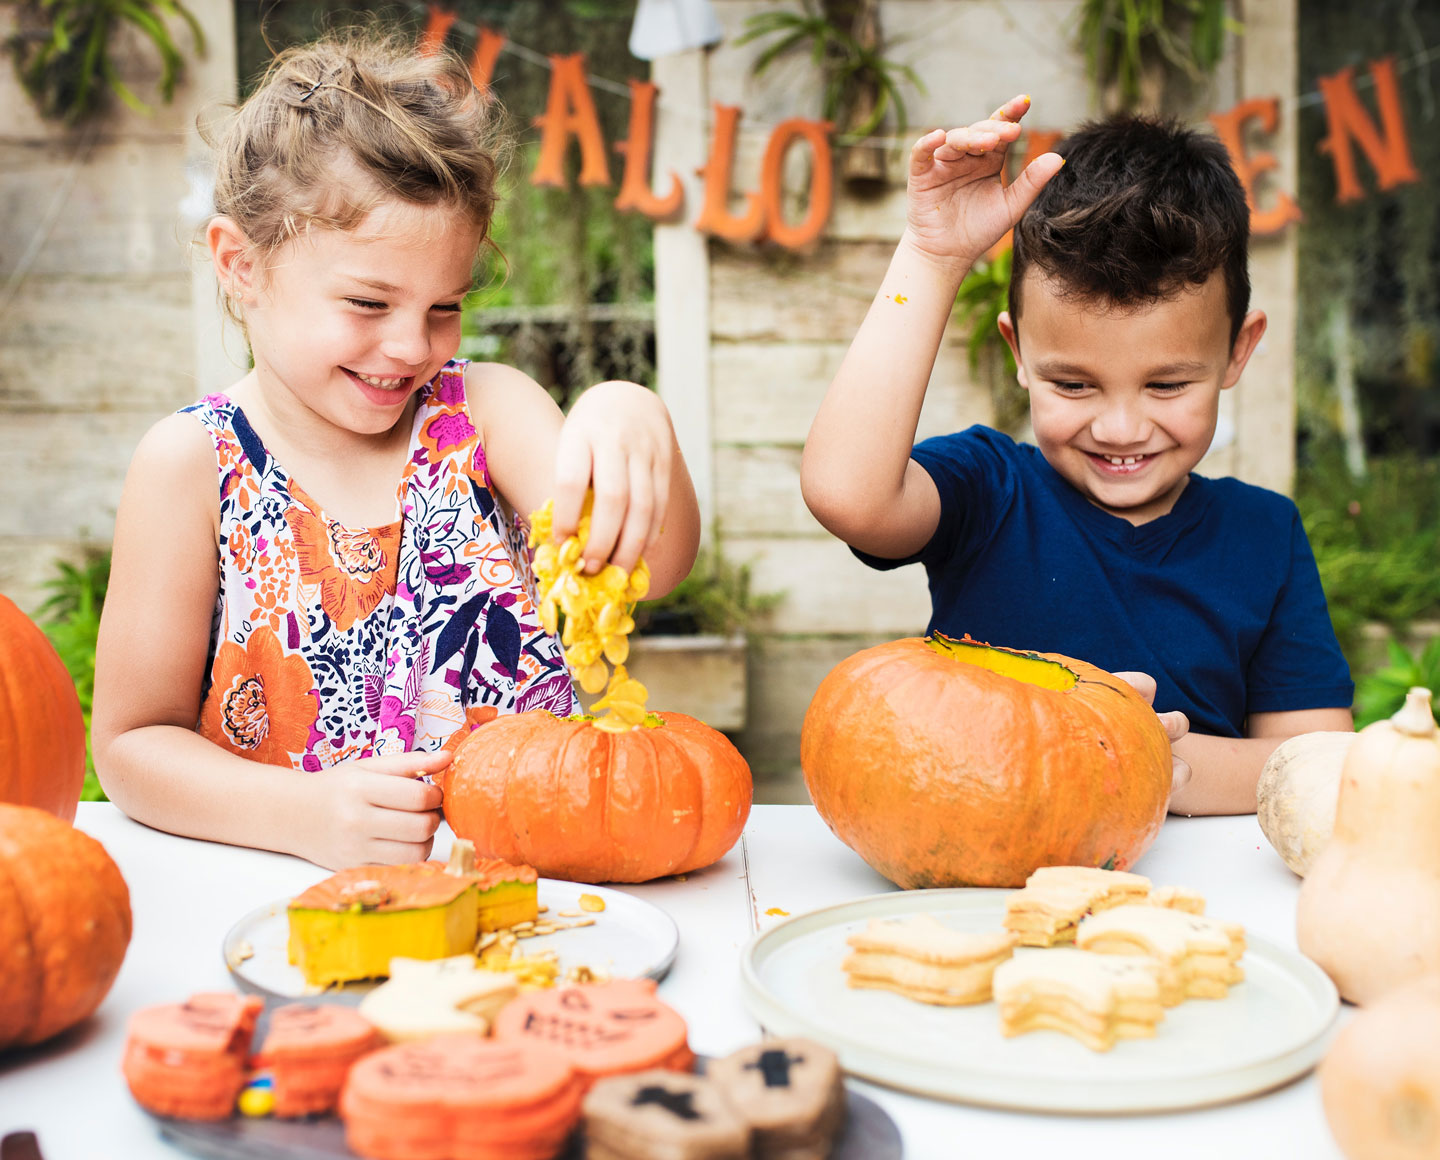 Simple Tips for a Healthier Halloween